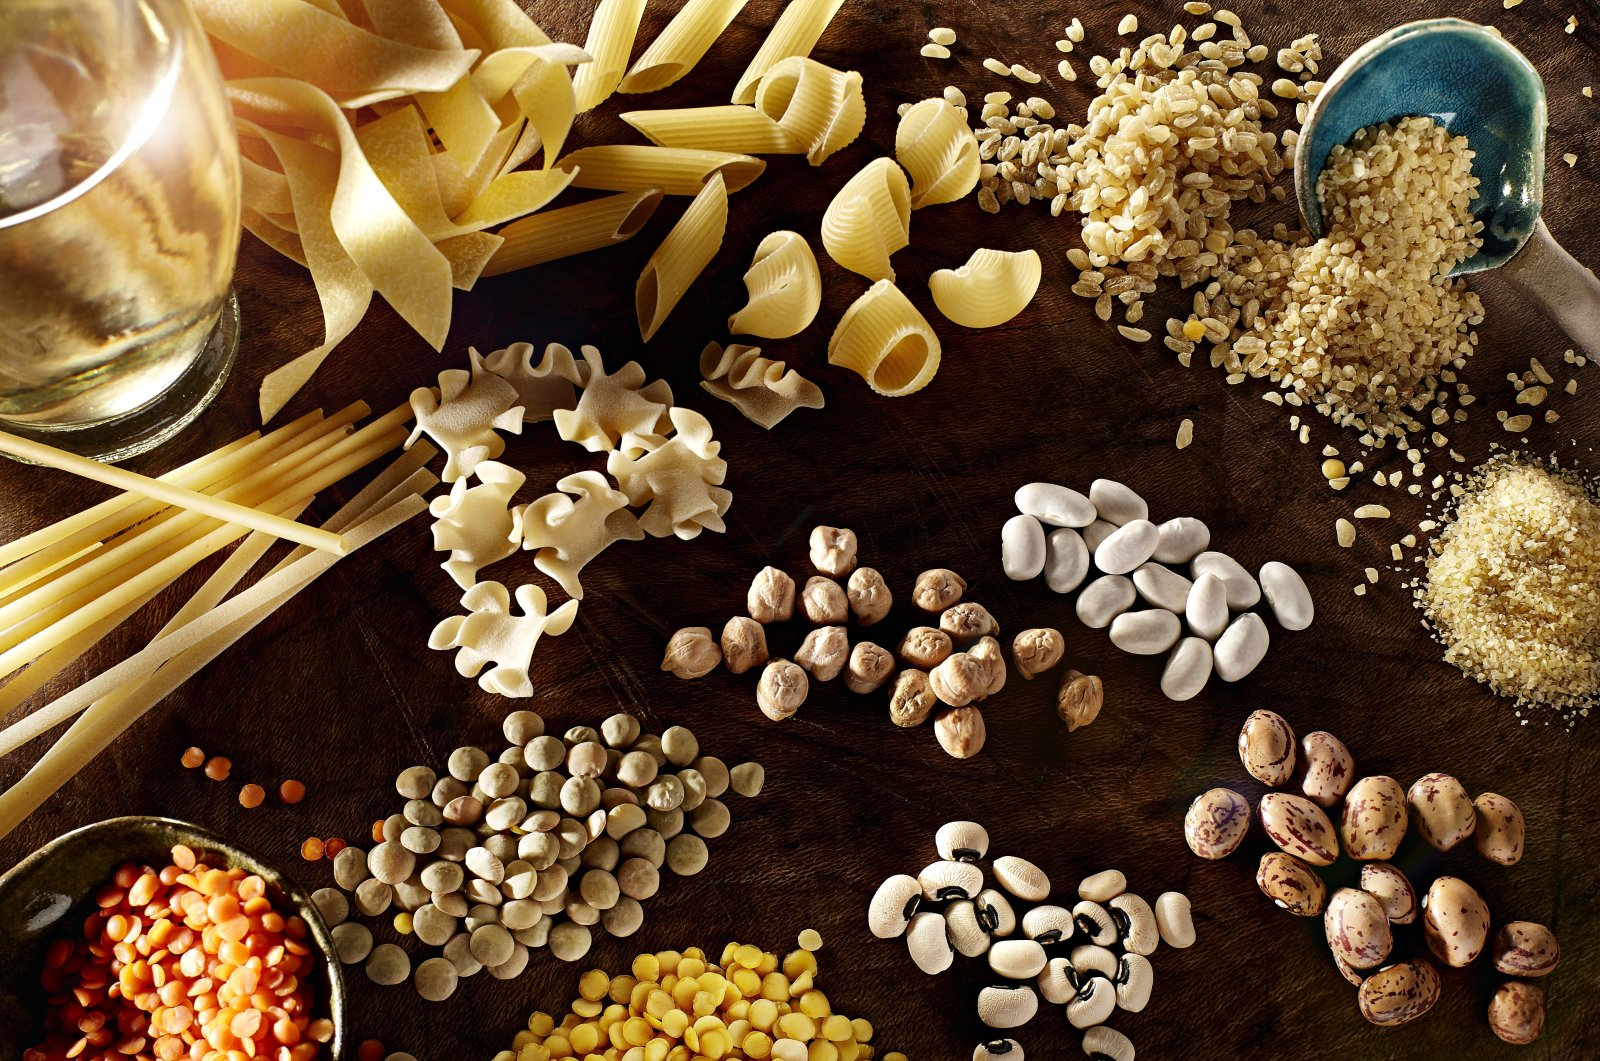 Orders for Turkish packaged legume and ready-to-eat food company's products have increased amid the coronavirus pandemic. (IHA Photo)